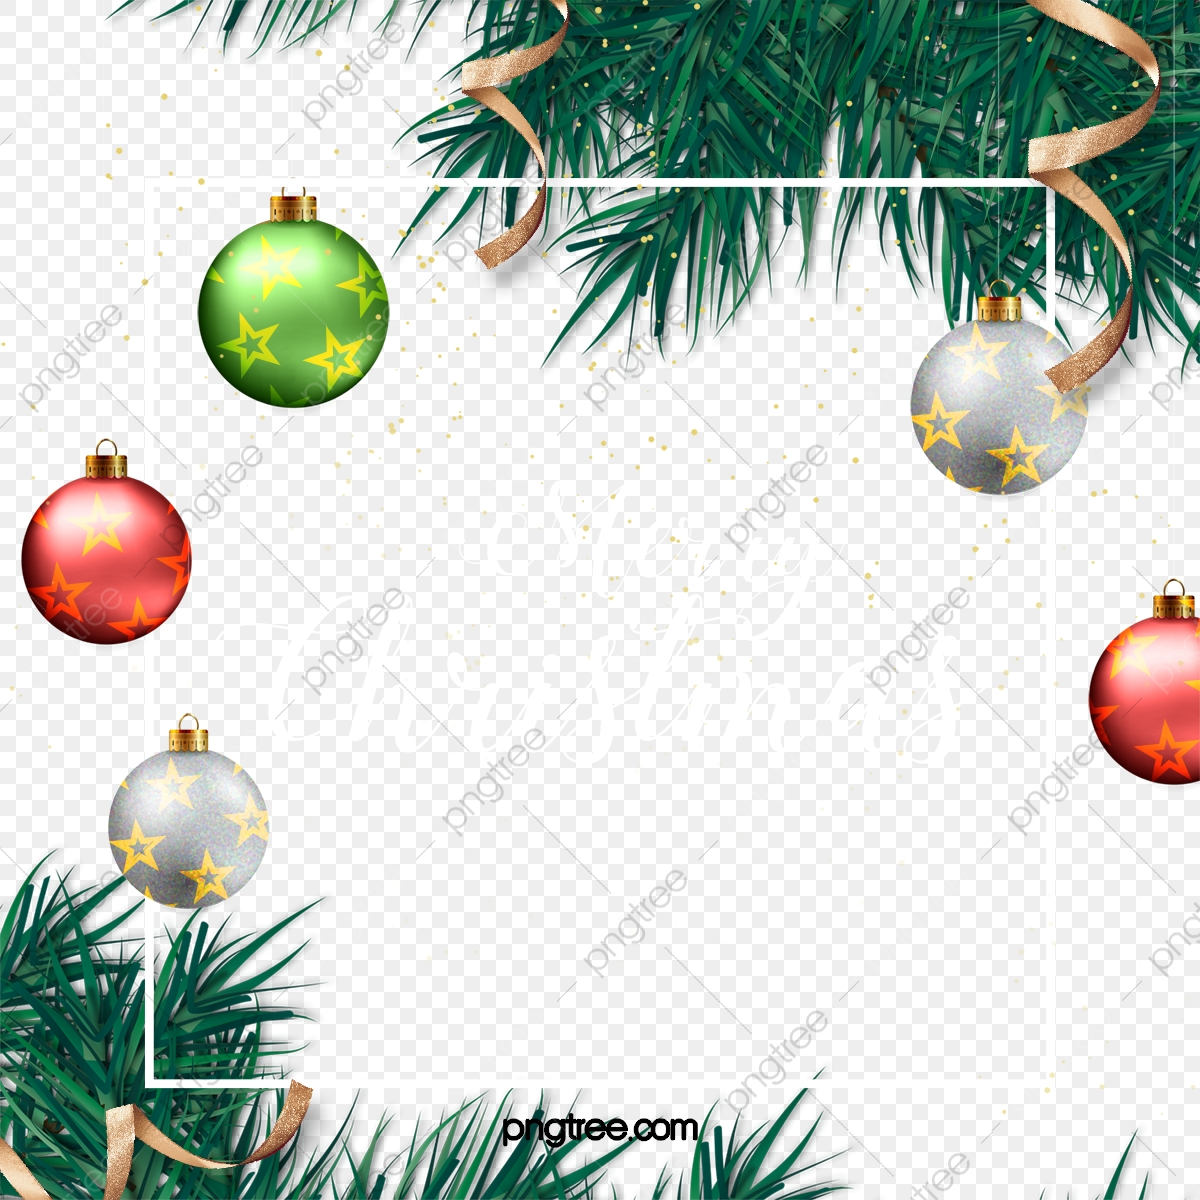 Xmas Tree For Decoration Clipart, PNG, 5498x4992px, Christmas Tree, Candle,  Christmas, Christmas Decoration, Christmas Lights Download